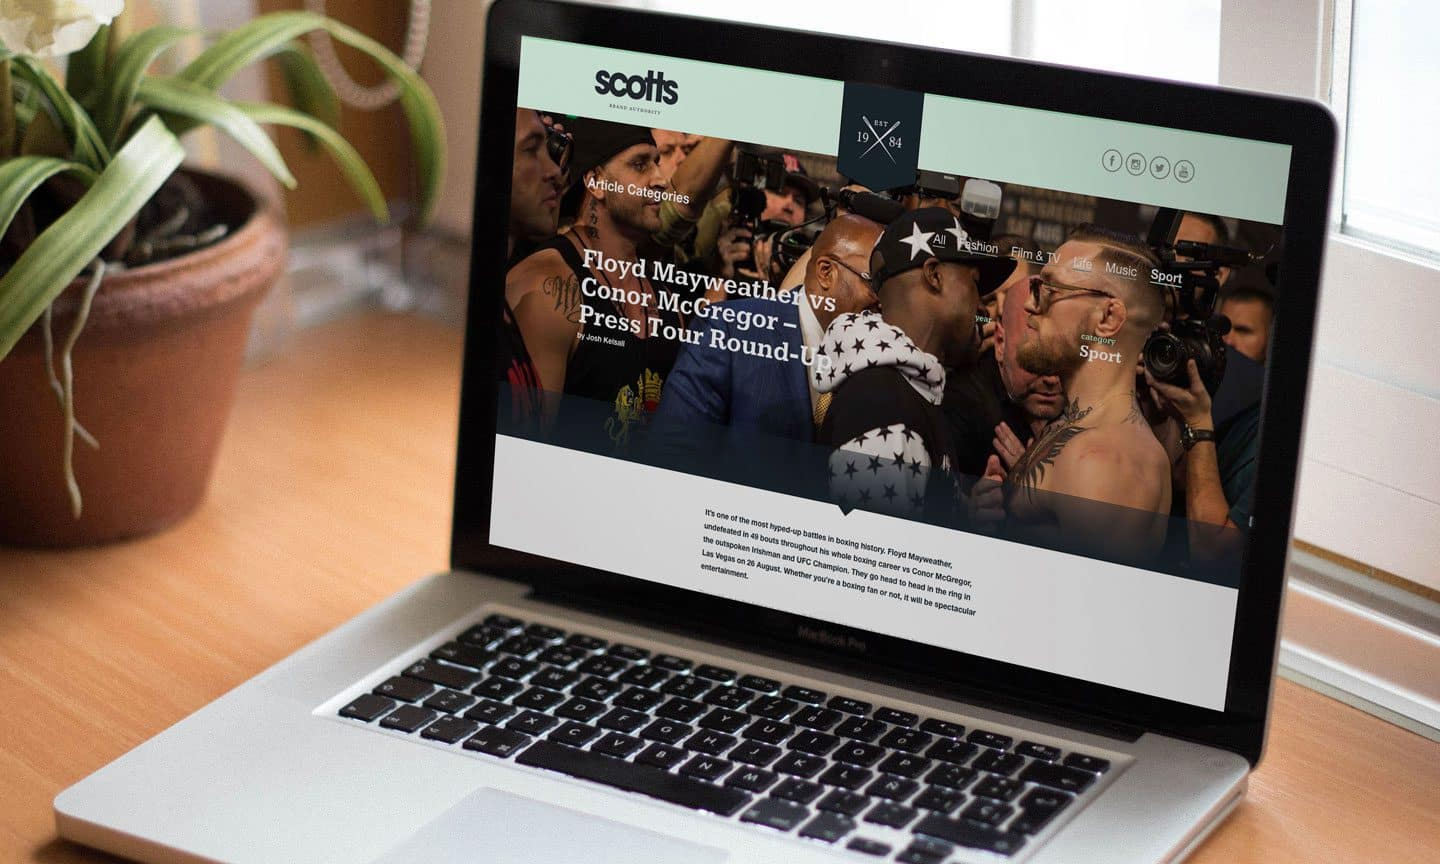 Scotts Menswear WordPress Blog